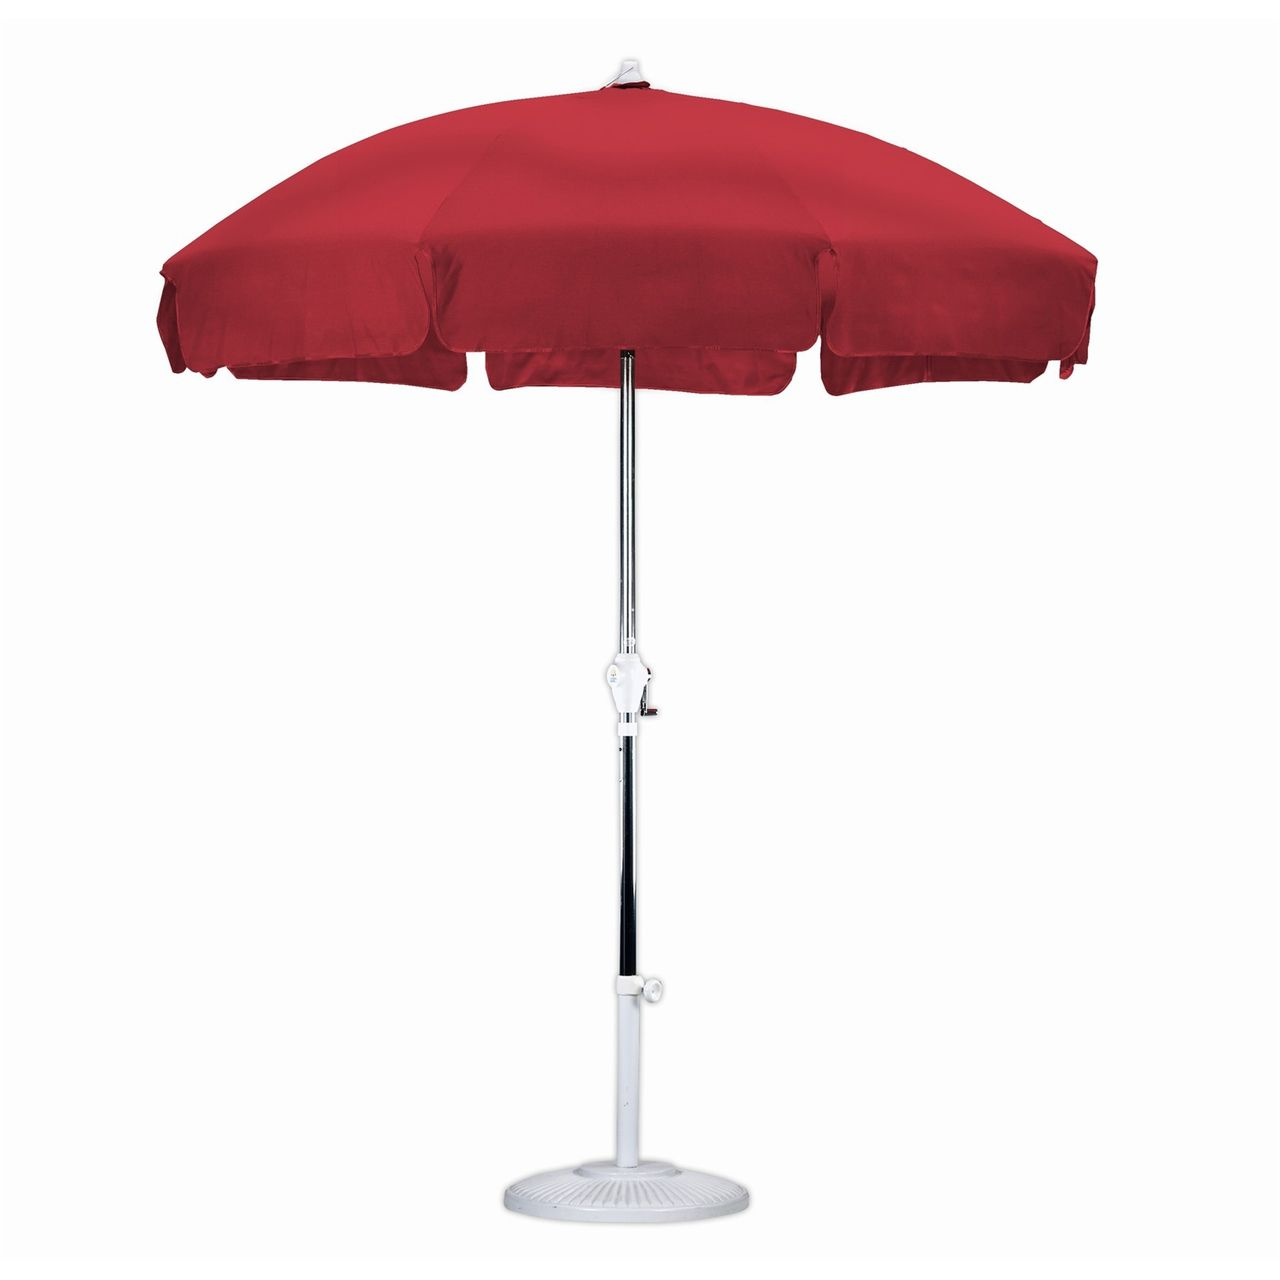 Attractive 7.5 Foot Patio Umbrella With Push Button Tilt In Red Olefin Fabric    Quality House